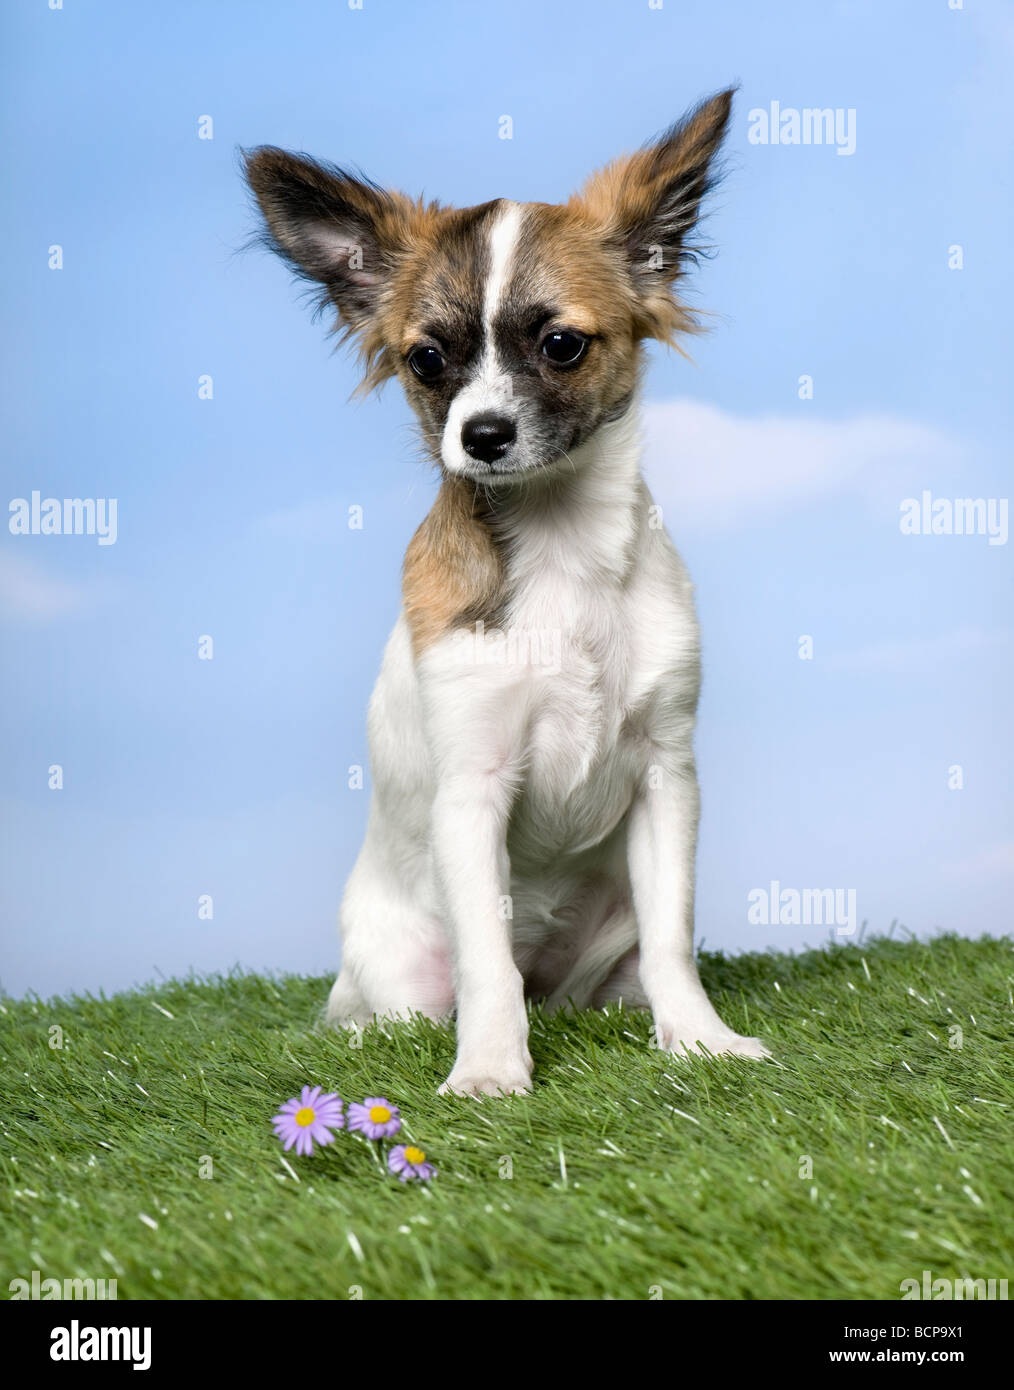 Chihuahua puppy sitting on grass against blue sky, studio shot - Stock Image